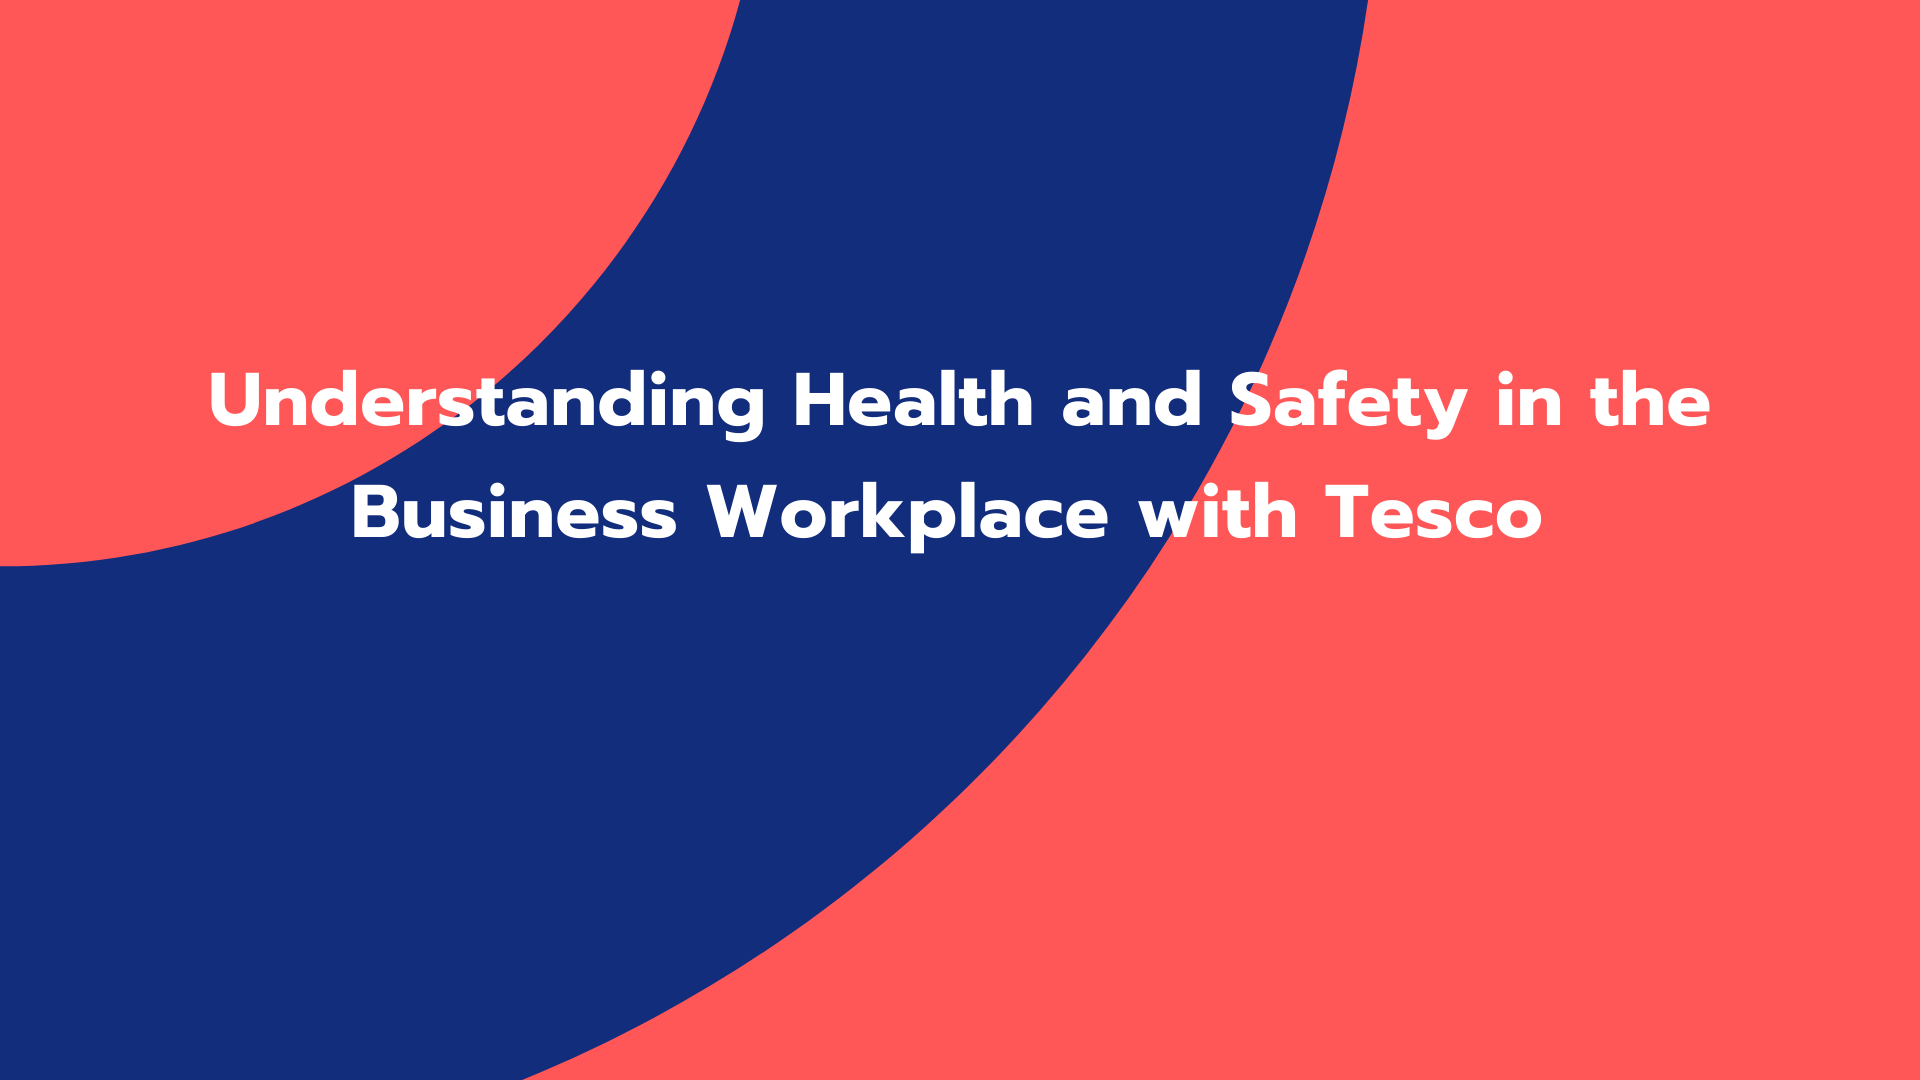 Understanding Health and Safety in the Business Workplace with Tesco